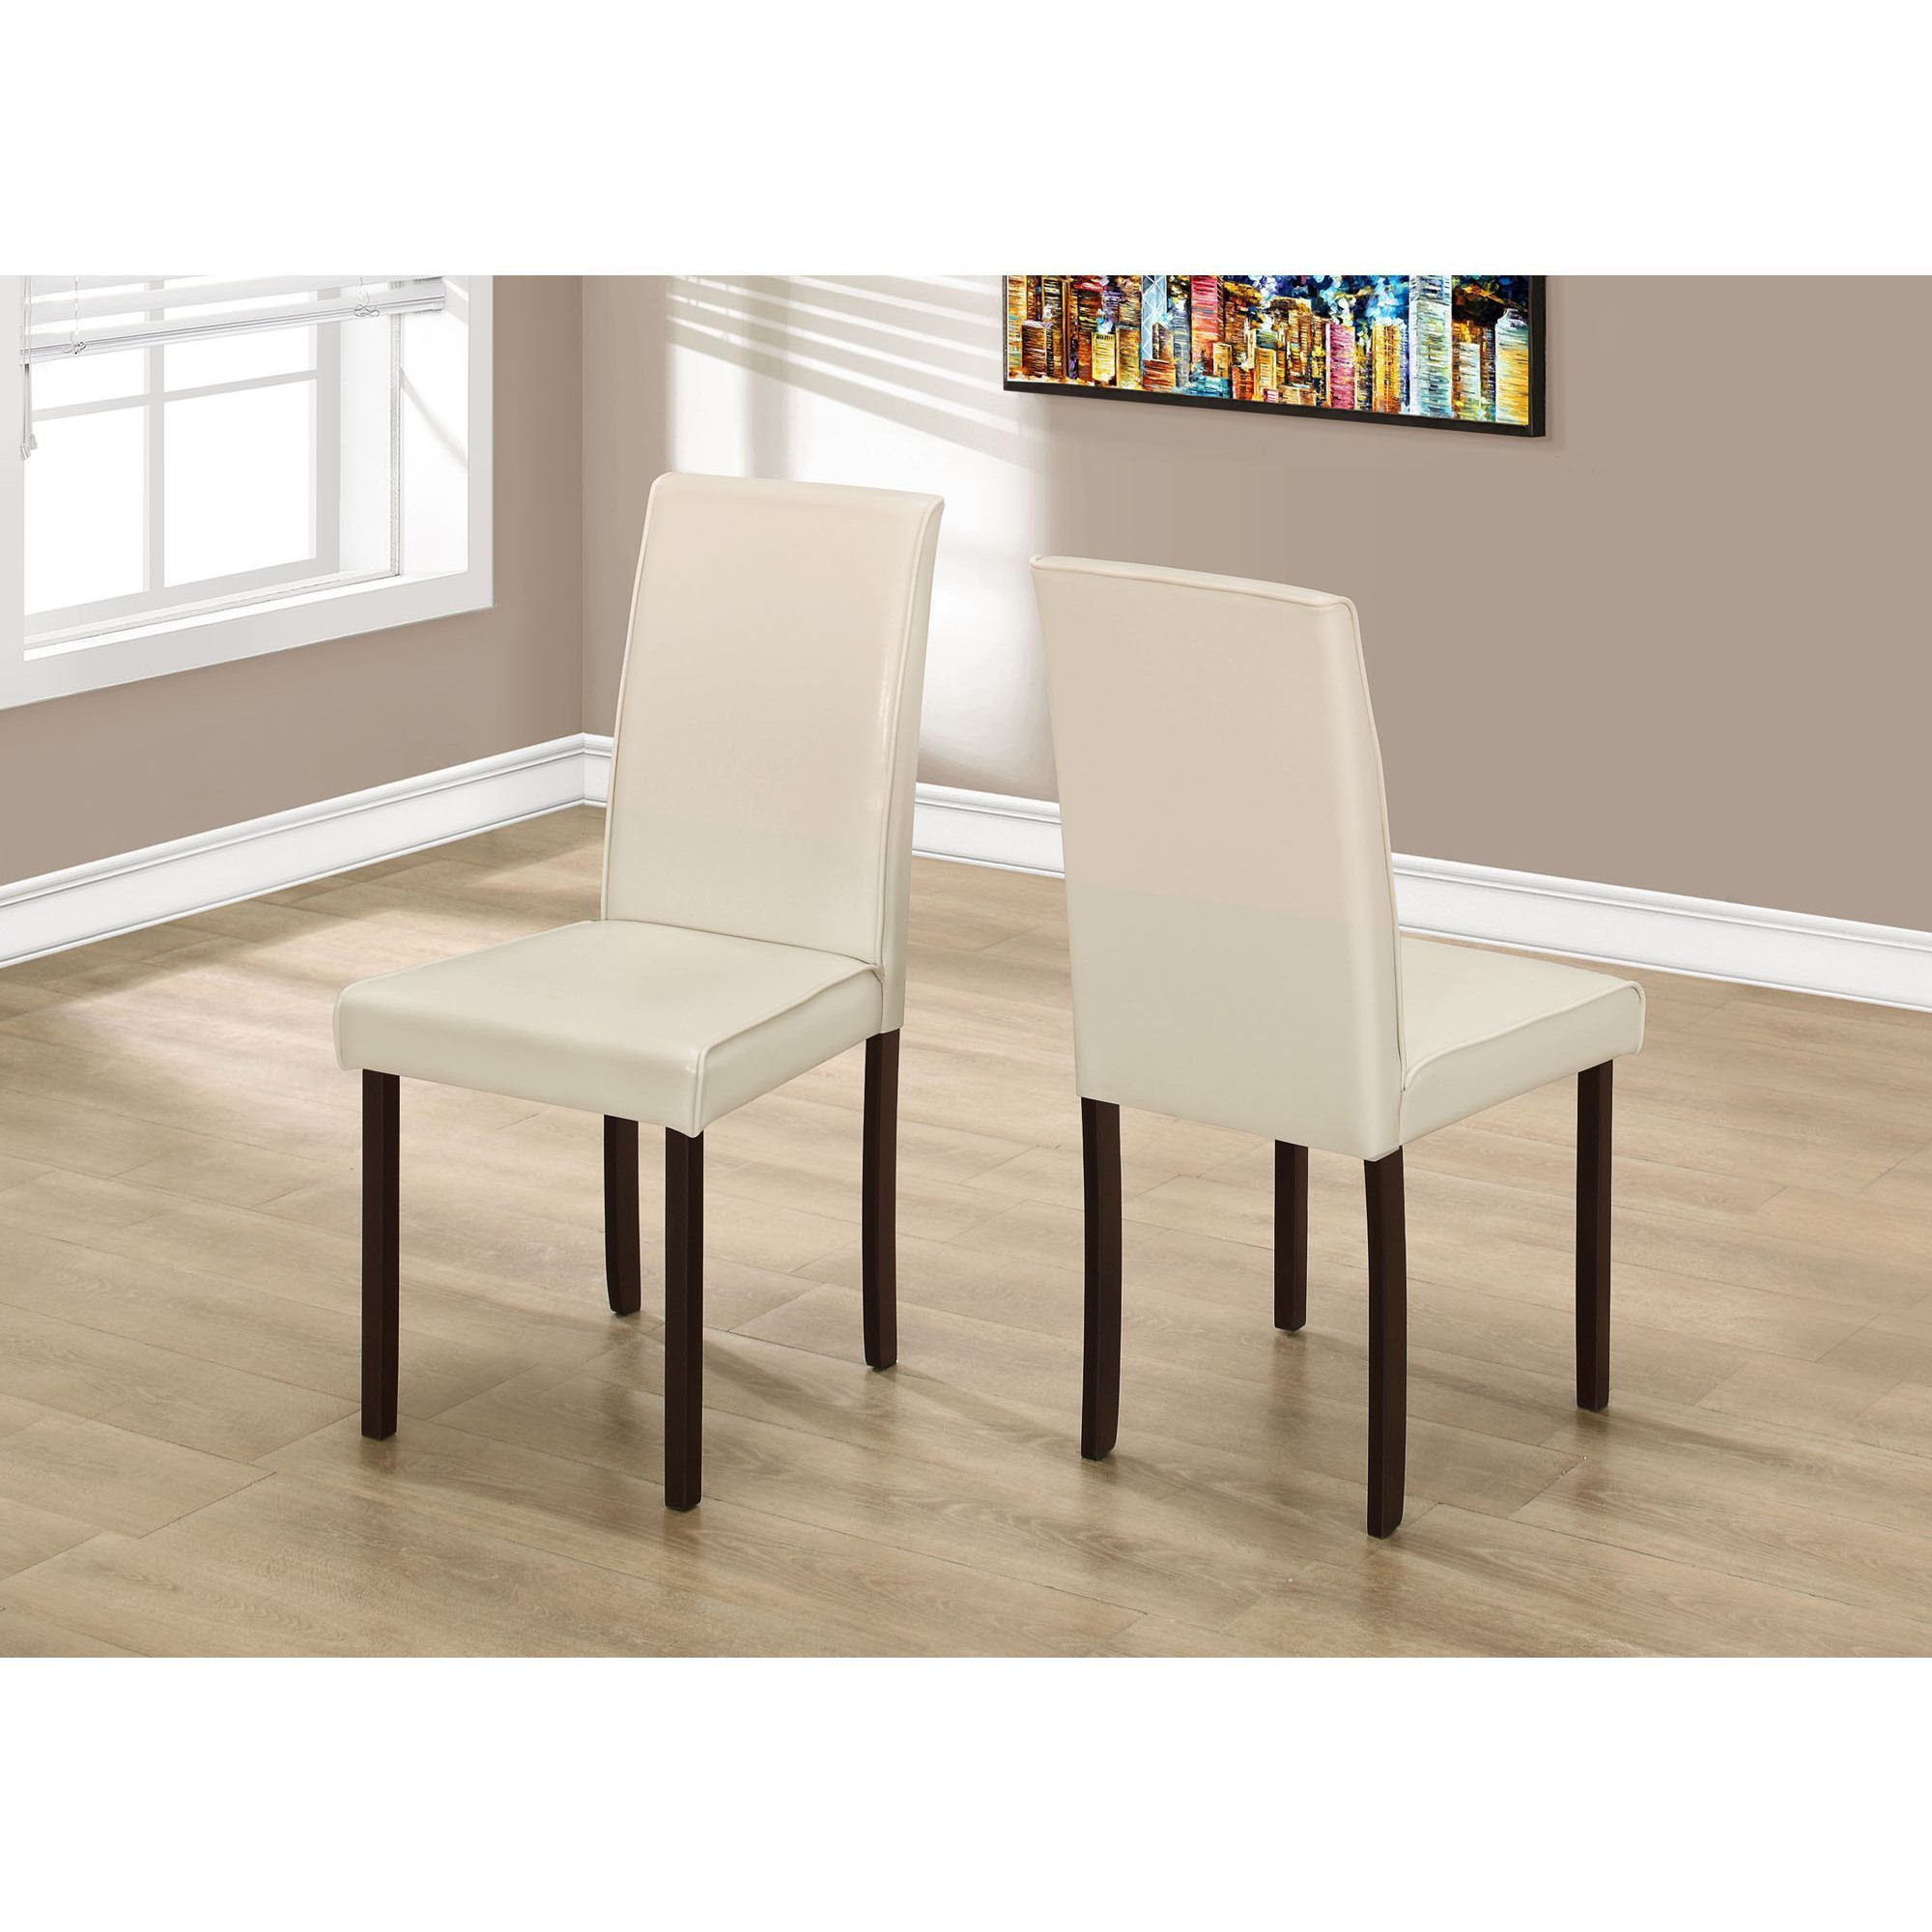 Monarch Ivory Leatherlook 36Inch Dining Chair Set Of 2 Ivory Endearing Ivory Leather Dining Room Chairs Decorating Inspiration